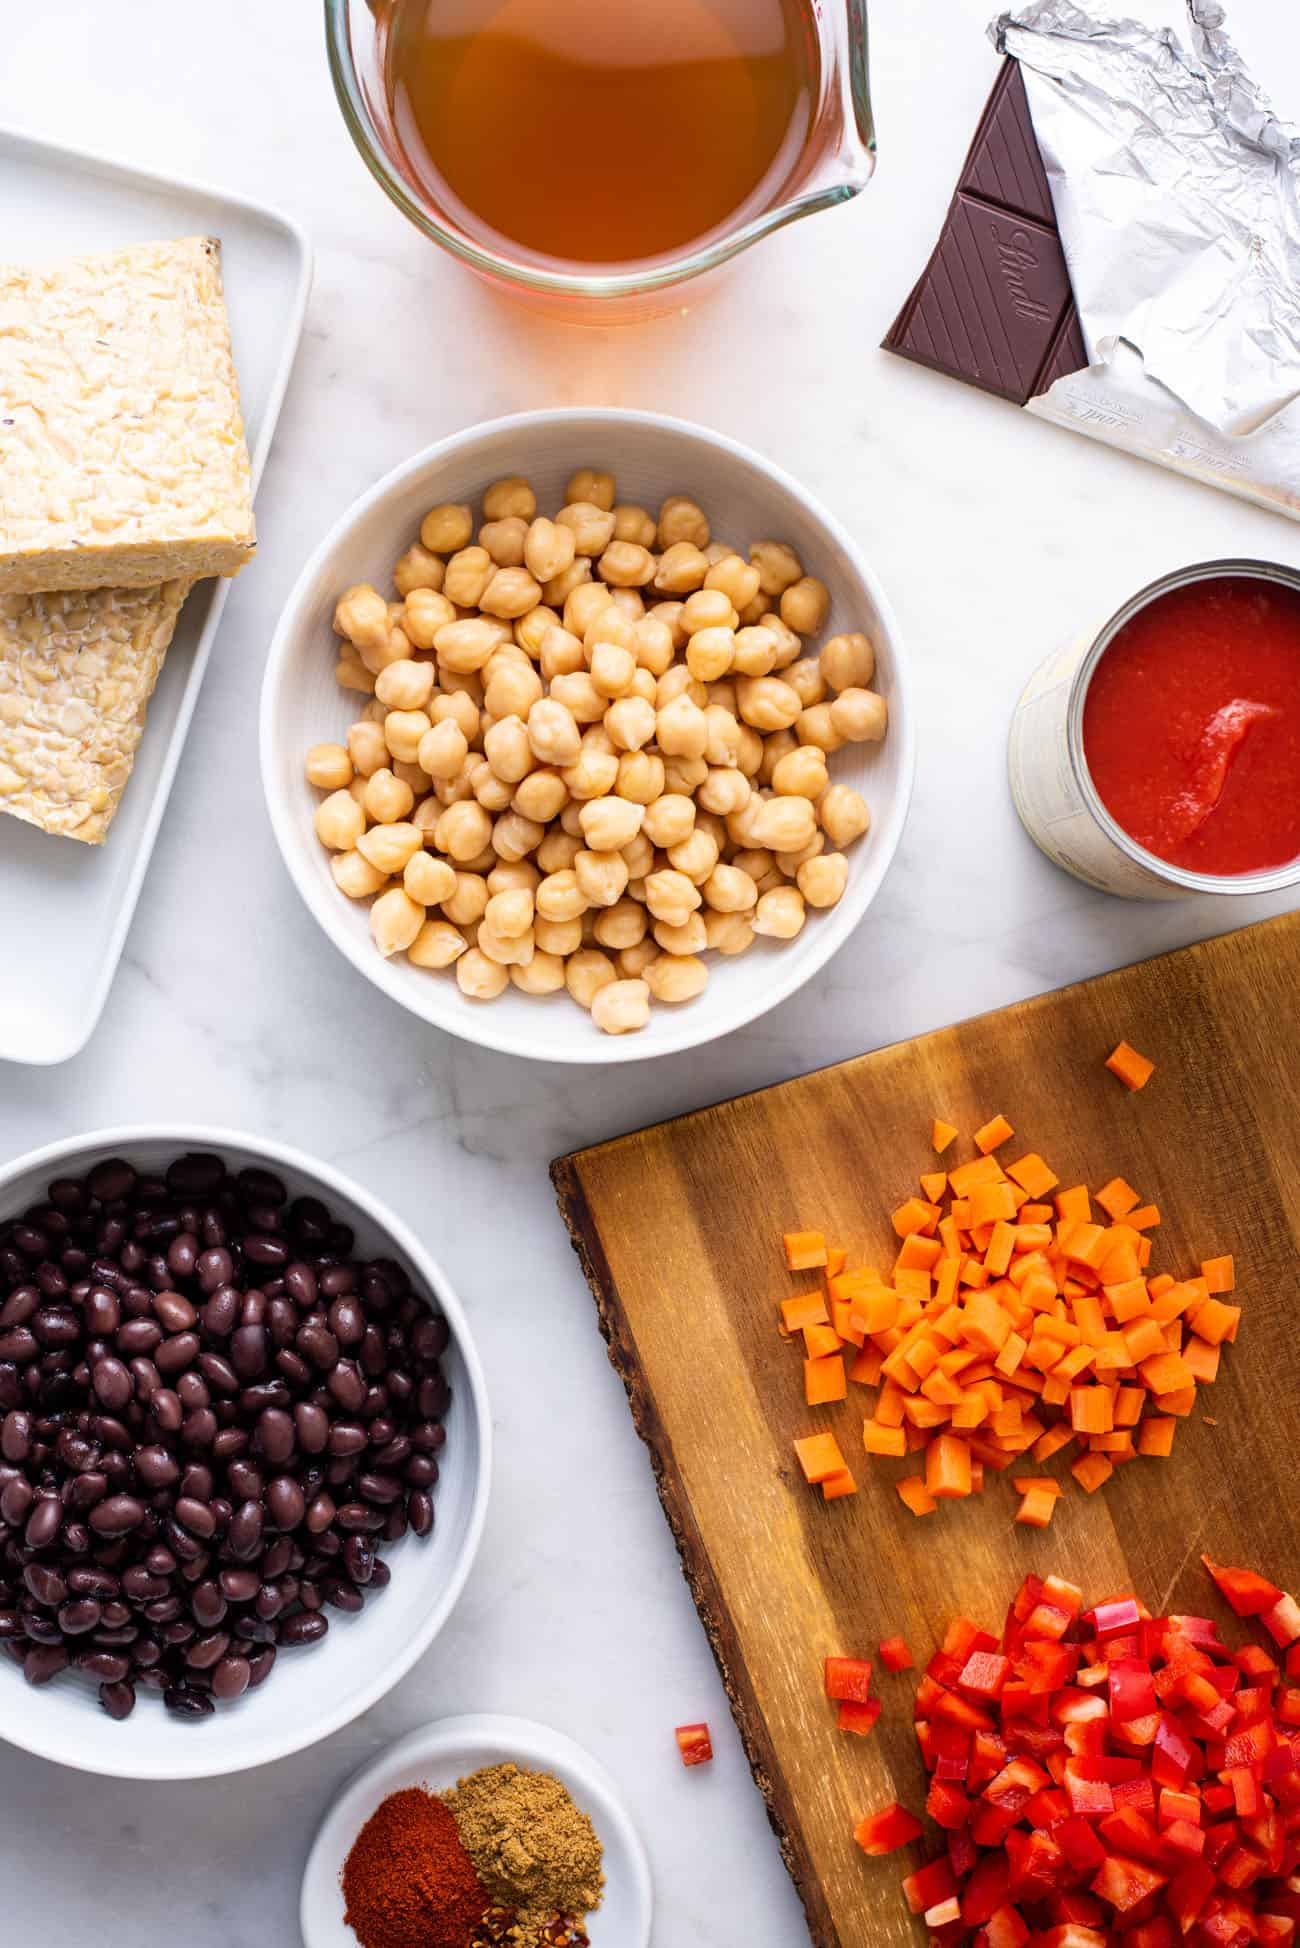 Ingredients gathered to make tempeh chili: chickpeas, black beans, dark chocolate, carrots, bell pepper